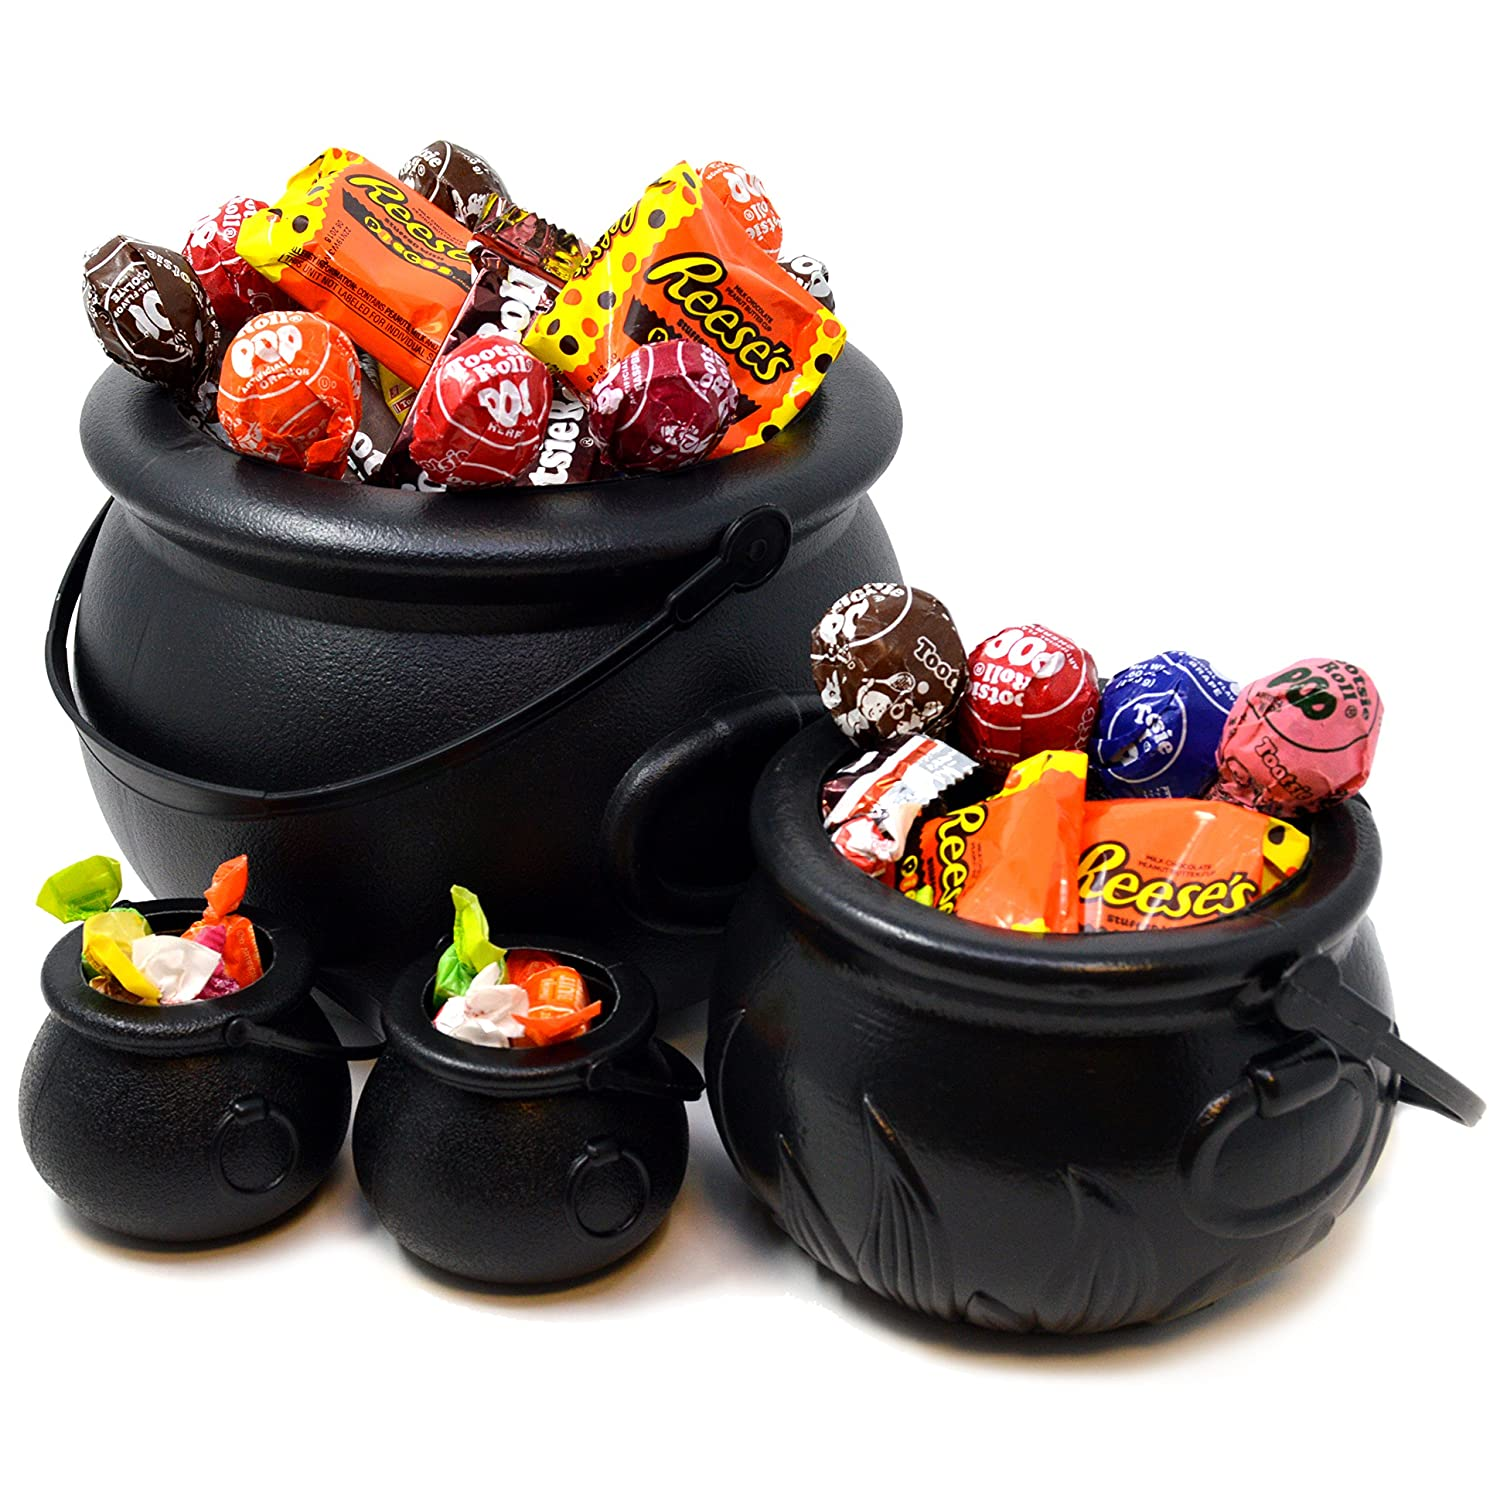 """JOYIN Black Cauldron with Handle 8"""" for Halloween Party Favors Decorations, Halloween Parties Candy Bucket, Candy Kettle and Pot of Gold Cauldron (Pack of 4)"""